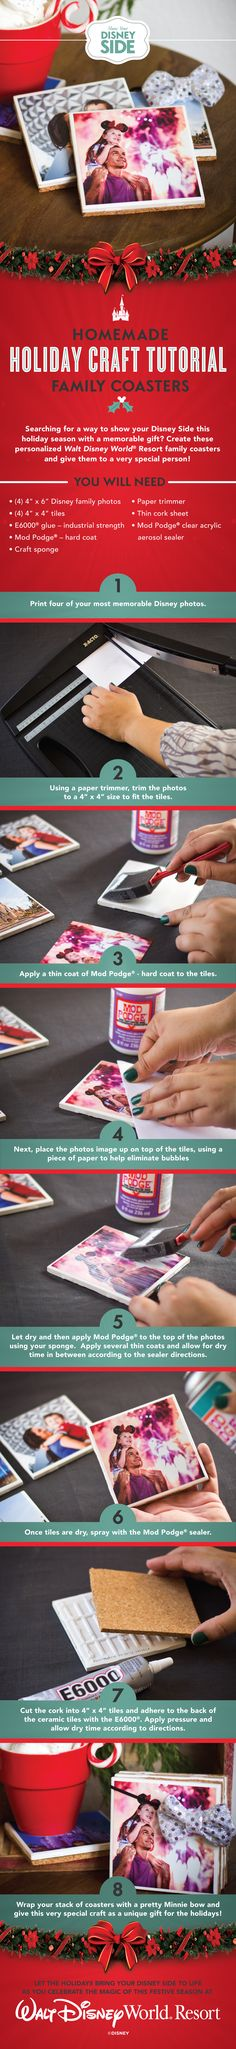 Learn how you can show your holiday #DisneySide with these cool photo coasters!